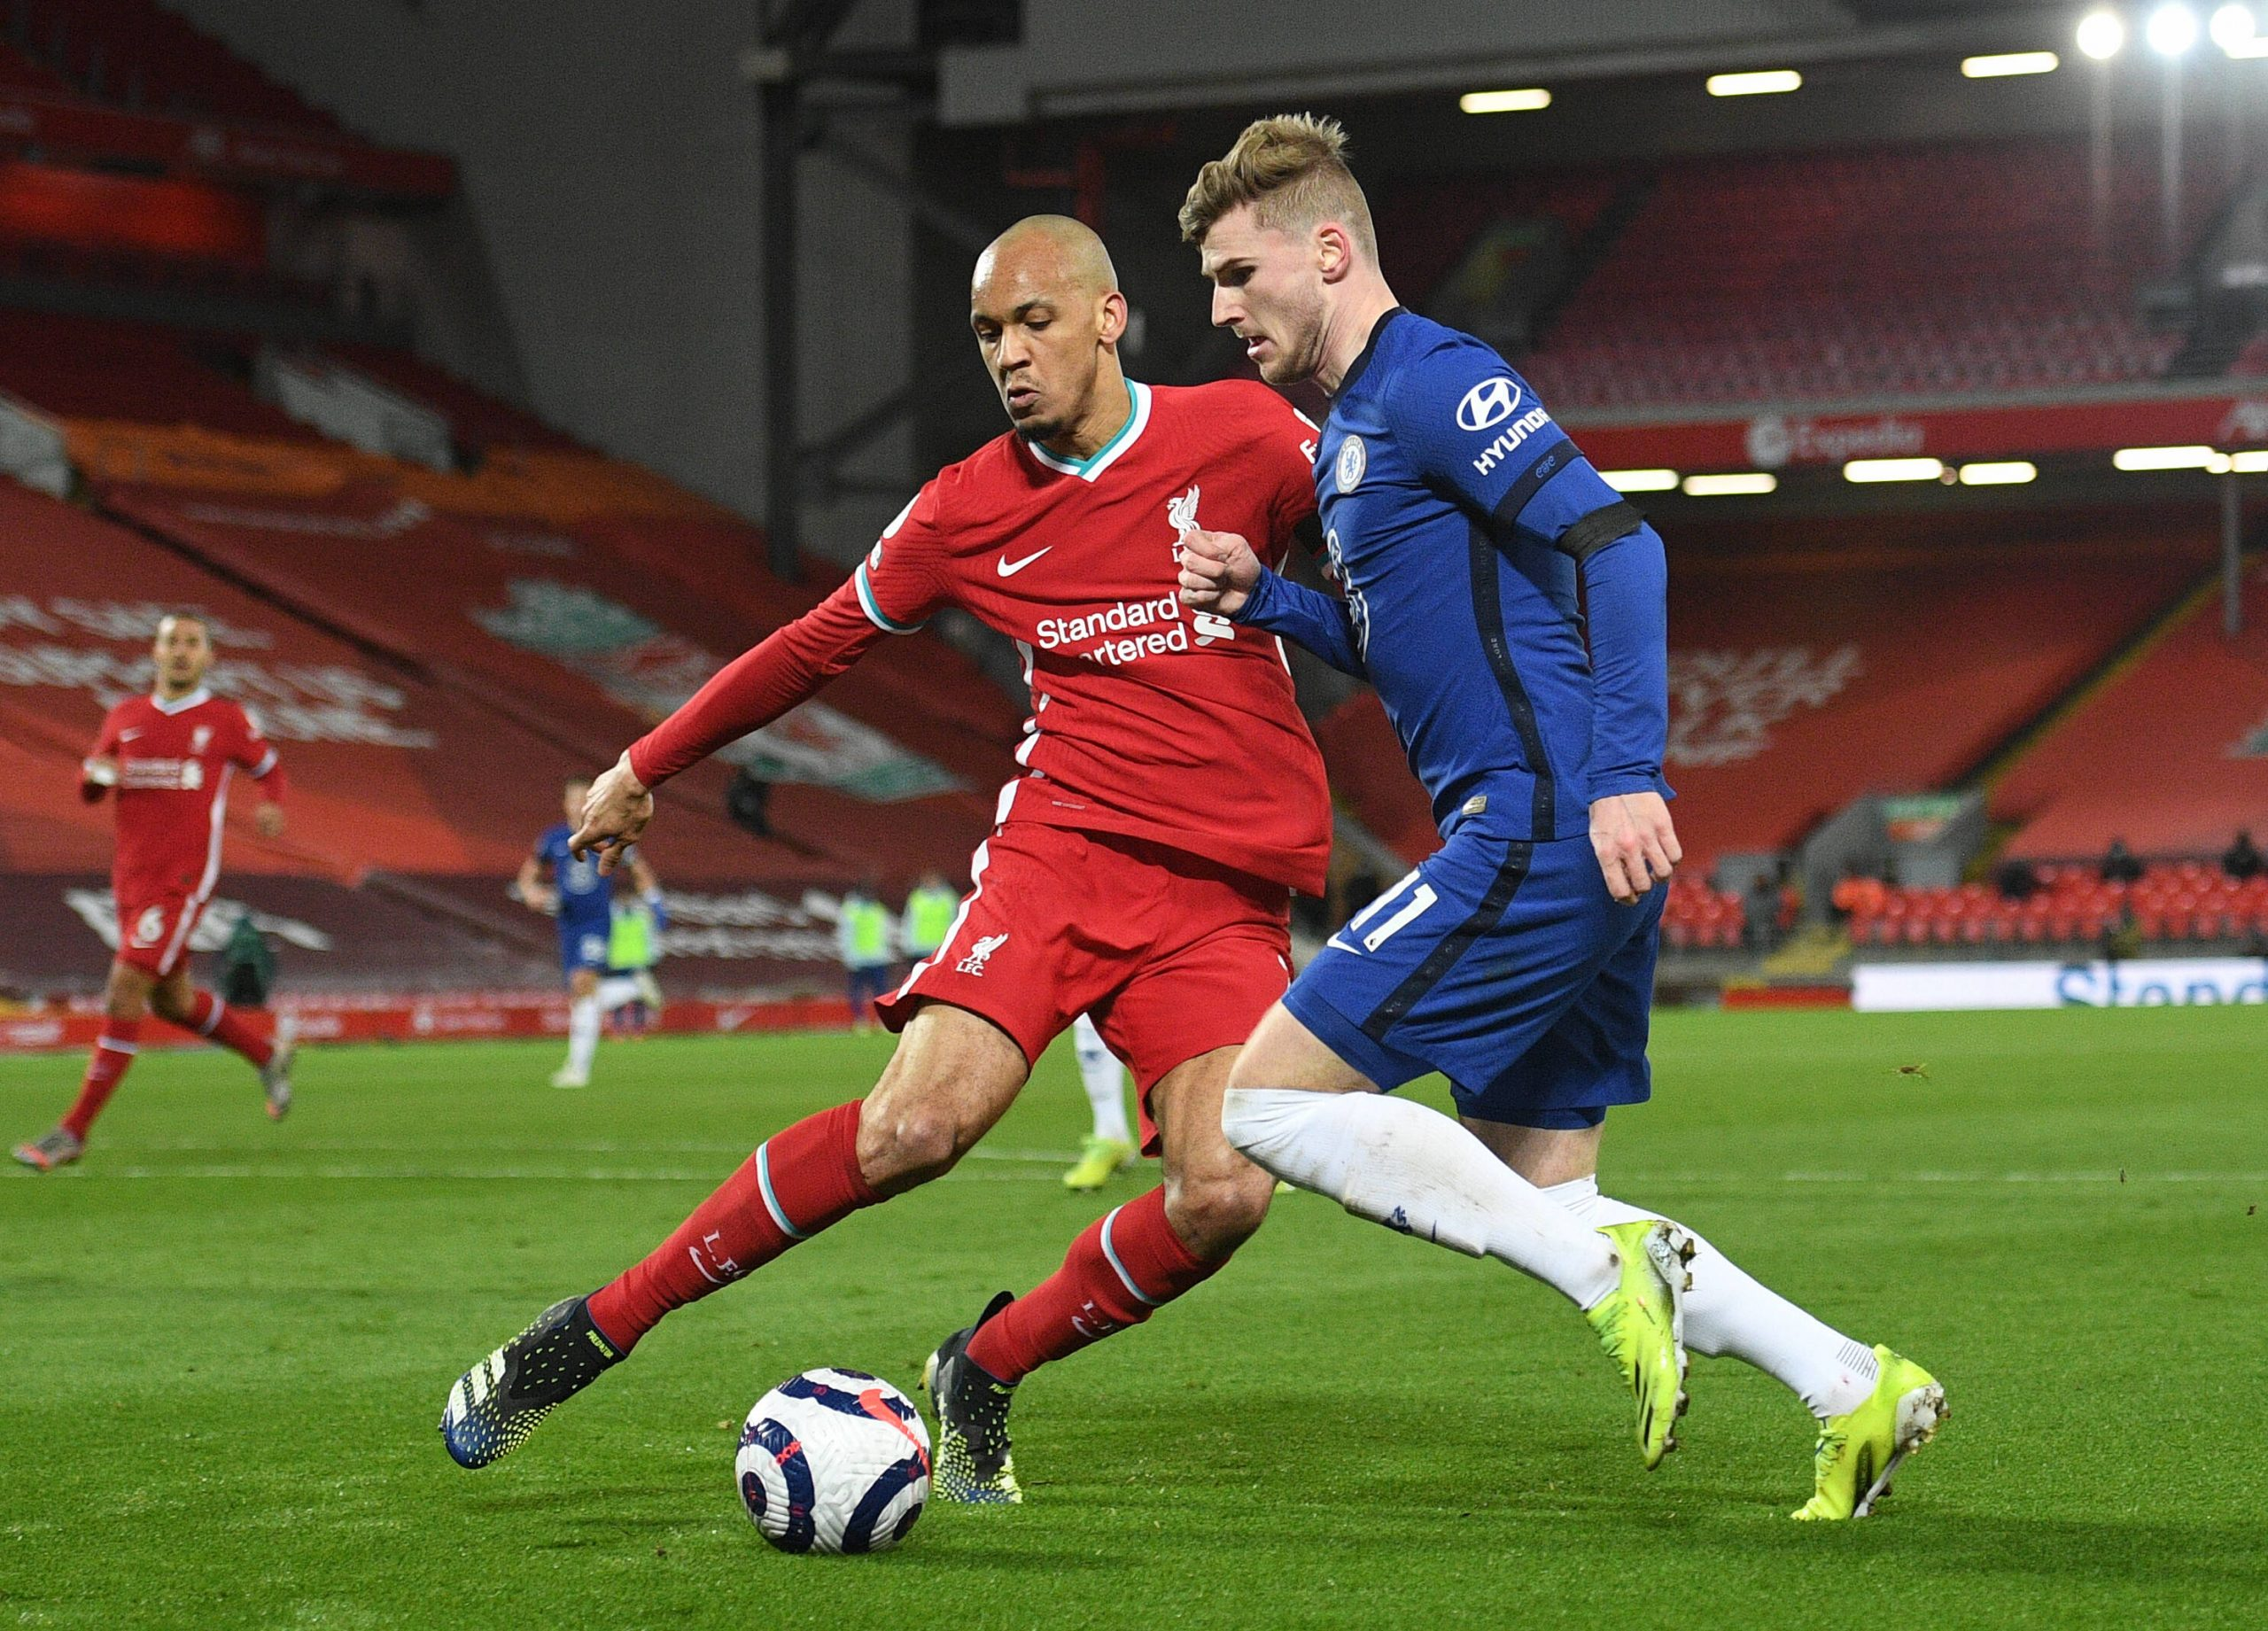 Fabinho of Liverpool in action against Chelsea in the Premier League.